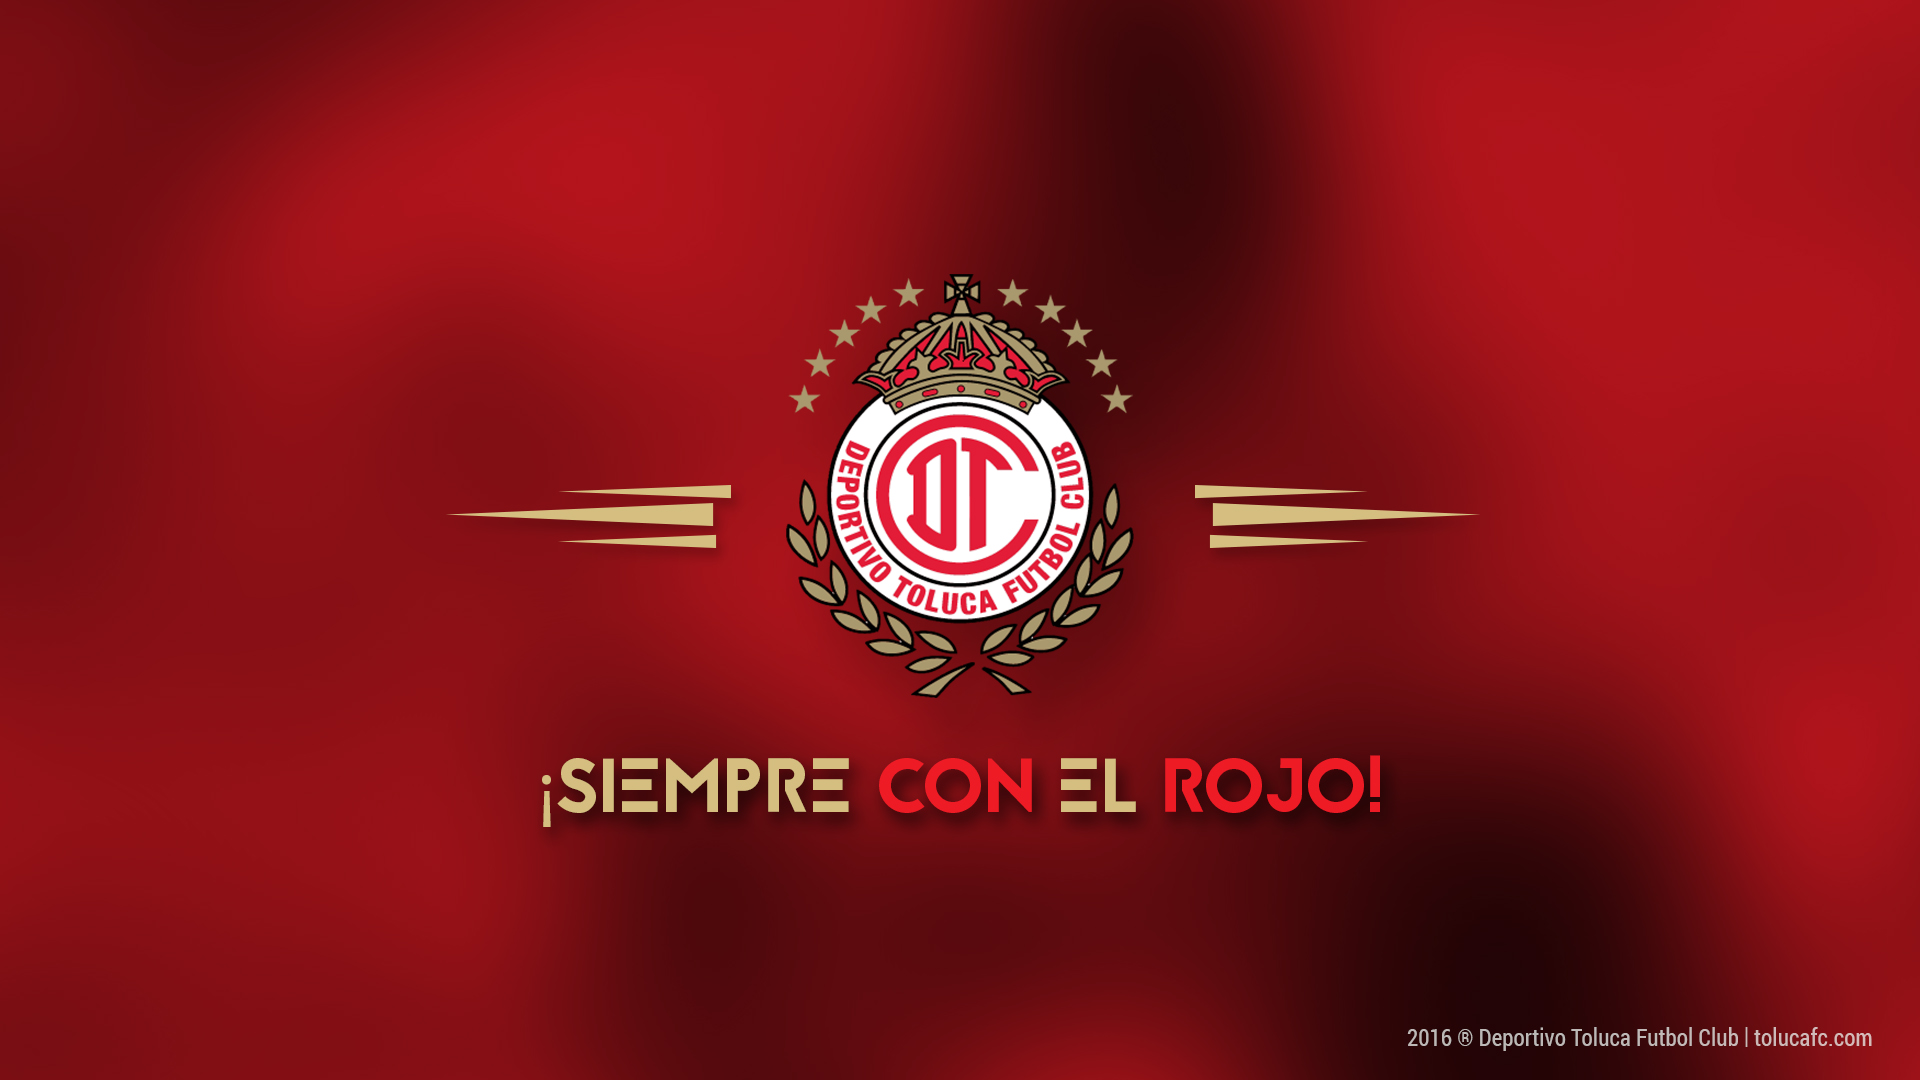 club toluca wallpaper - photo #15